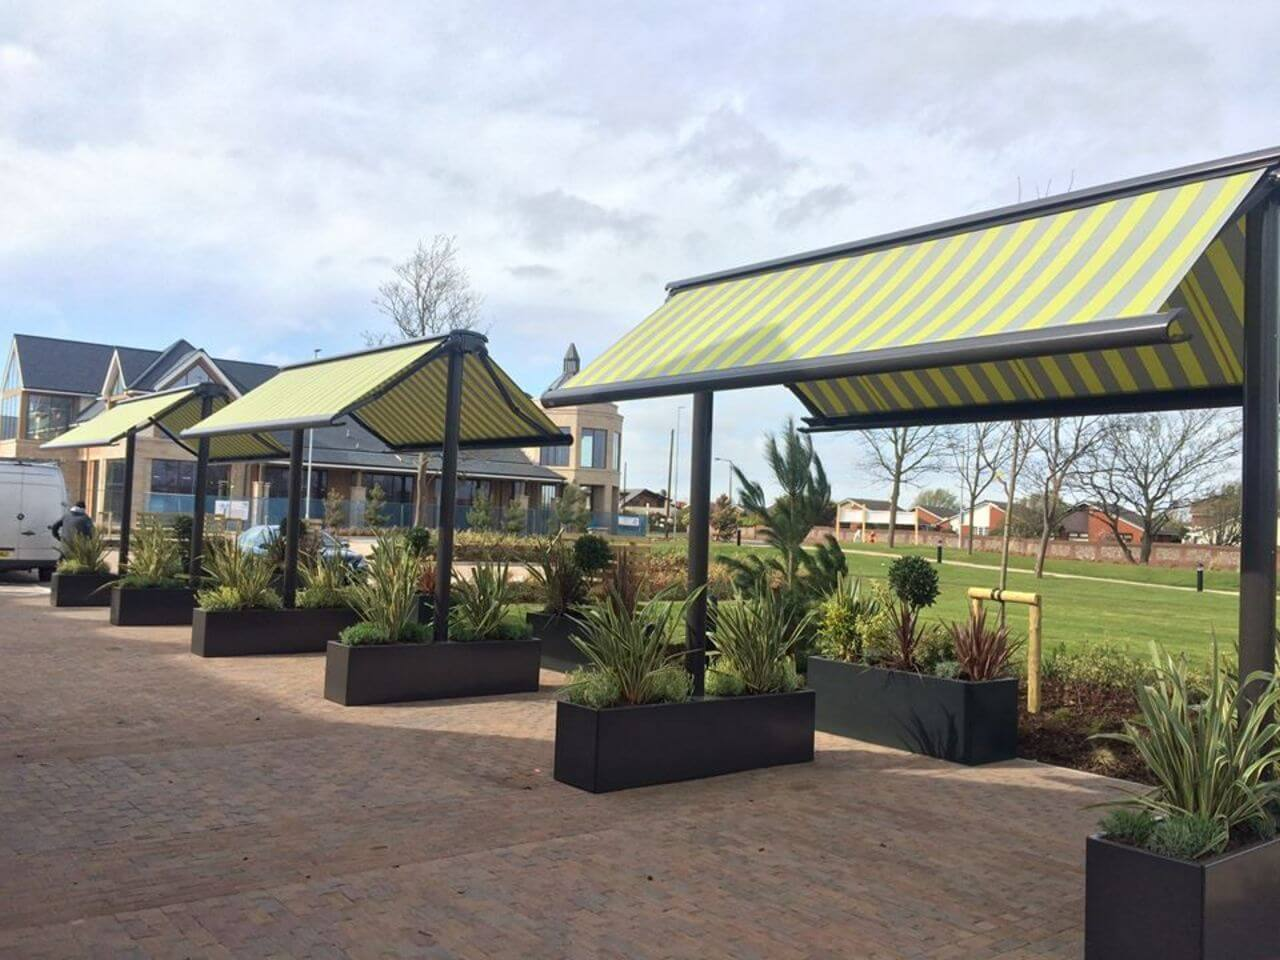 Markilux syncra awnings in a pub beer garden